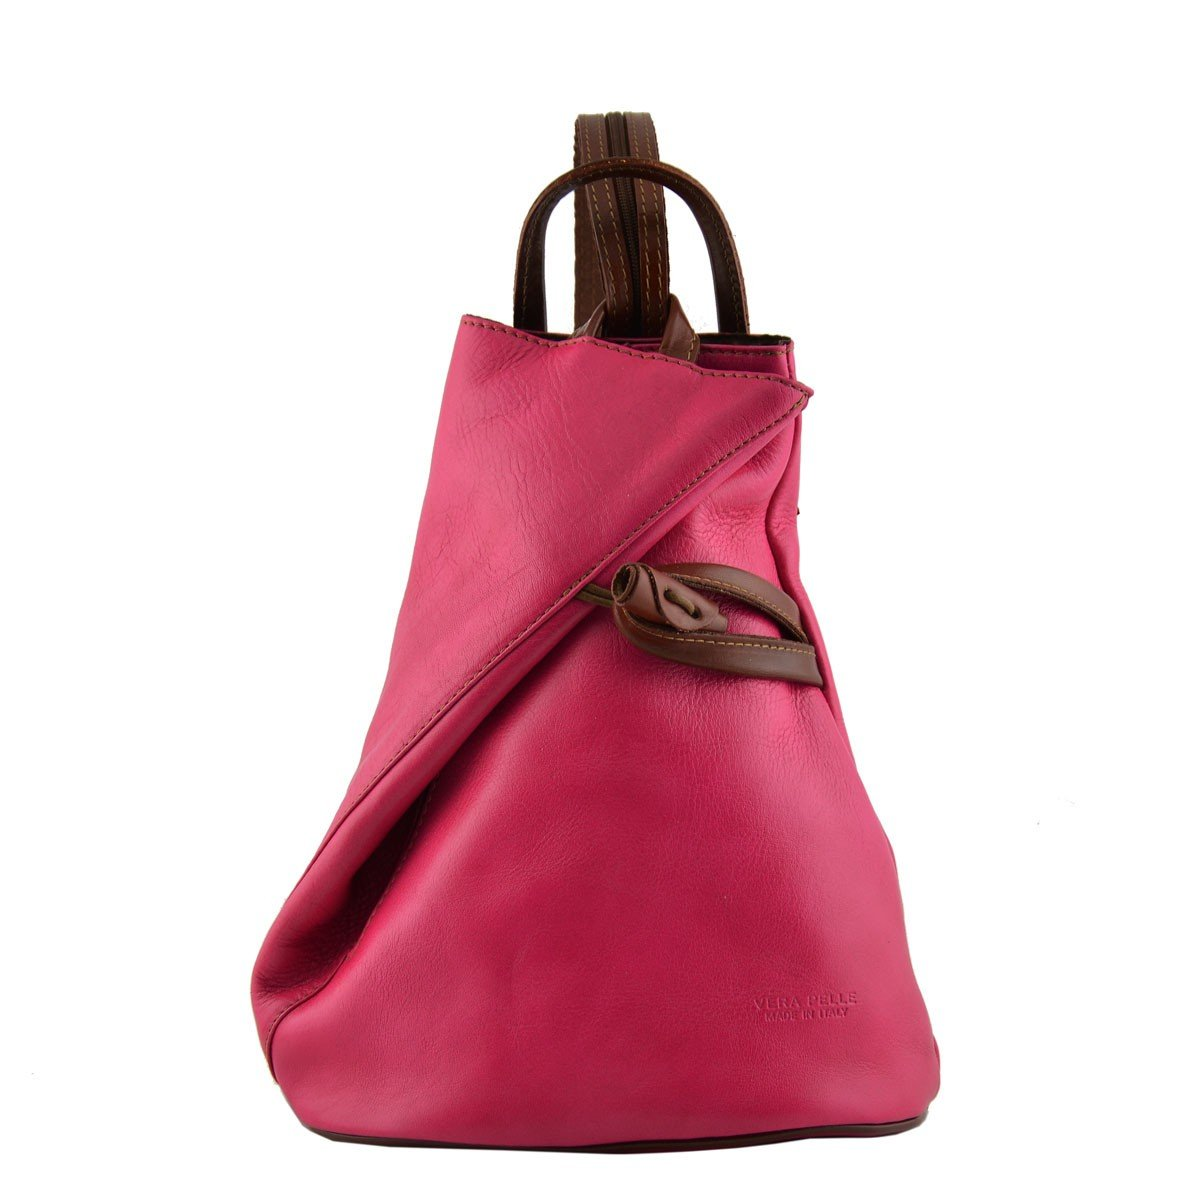 7beb50c482a22c Made In Italy Leather Backpack For Women With Zipped Straps Color  Fuchsia/Brown Tuscan Leather - Backpack: Amazon.co.uk: Shoes & Bags